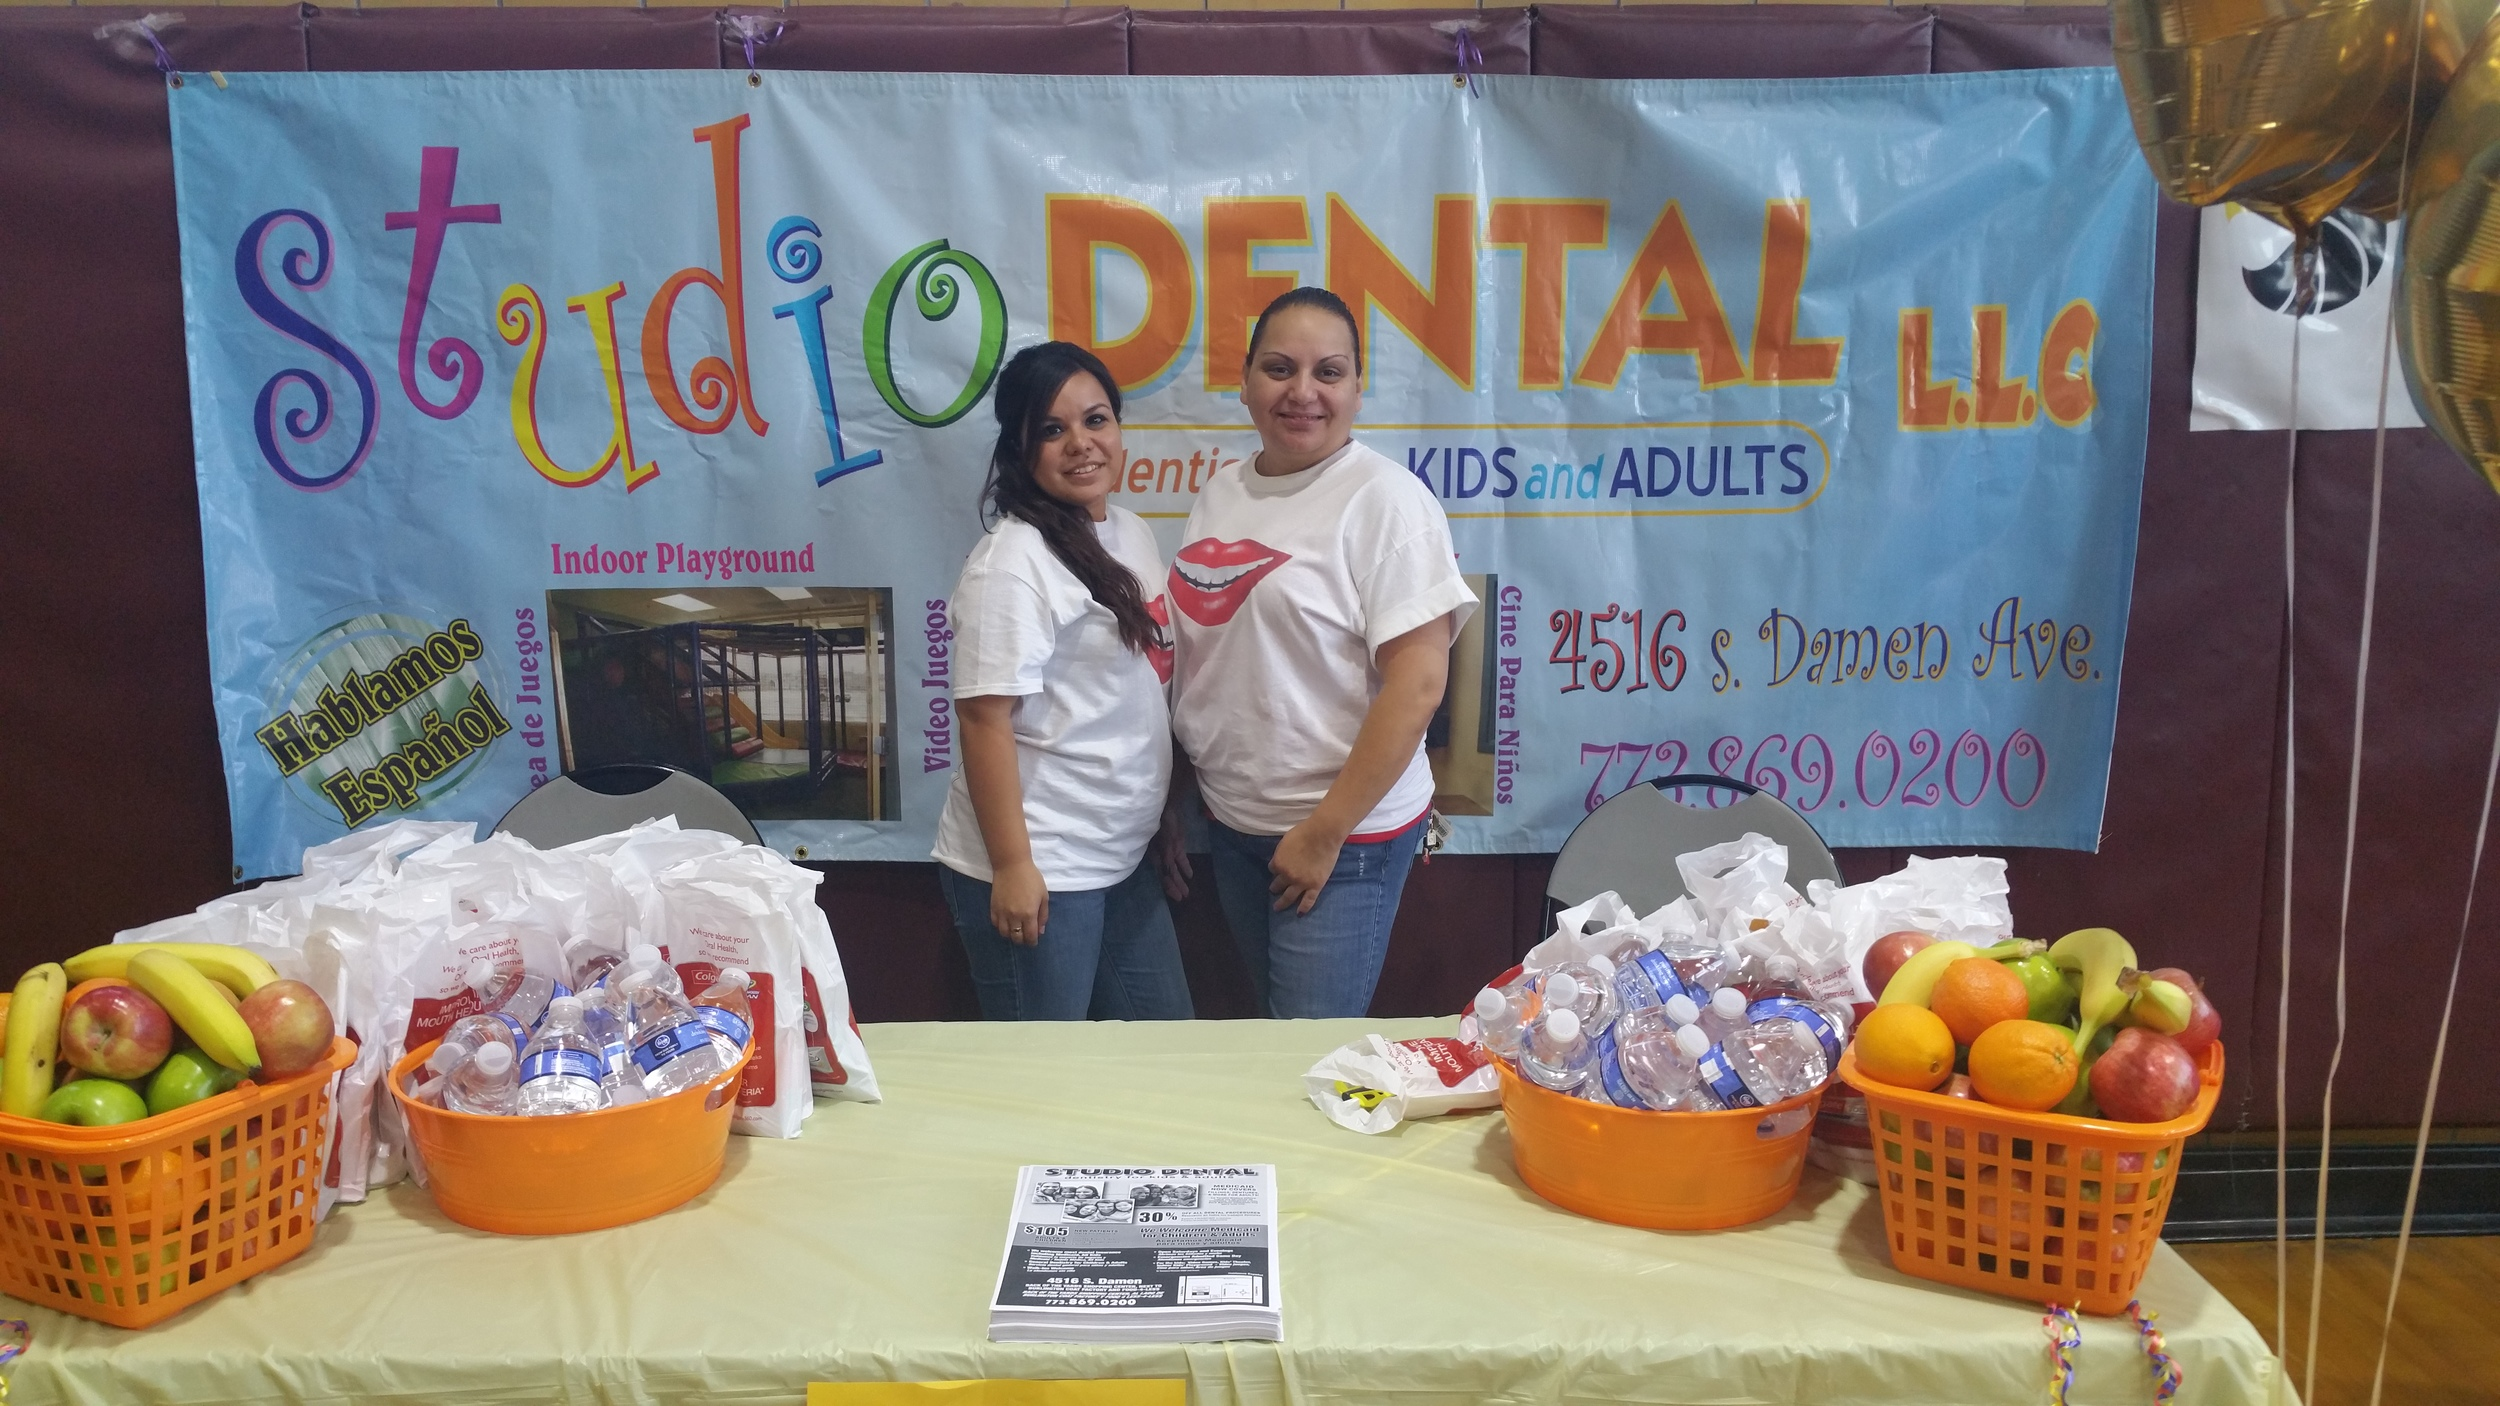 Studio Dental staff behind their table at the Back to School Health and Fun Fair at Davis Square Park